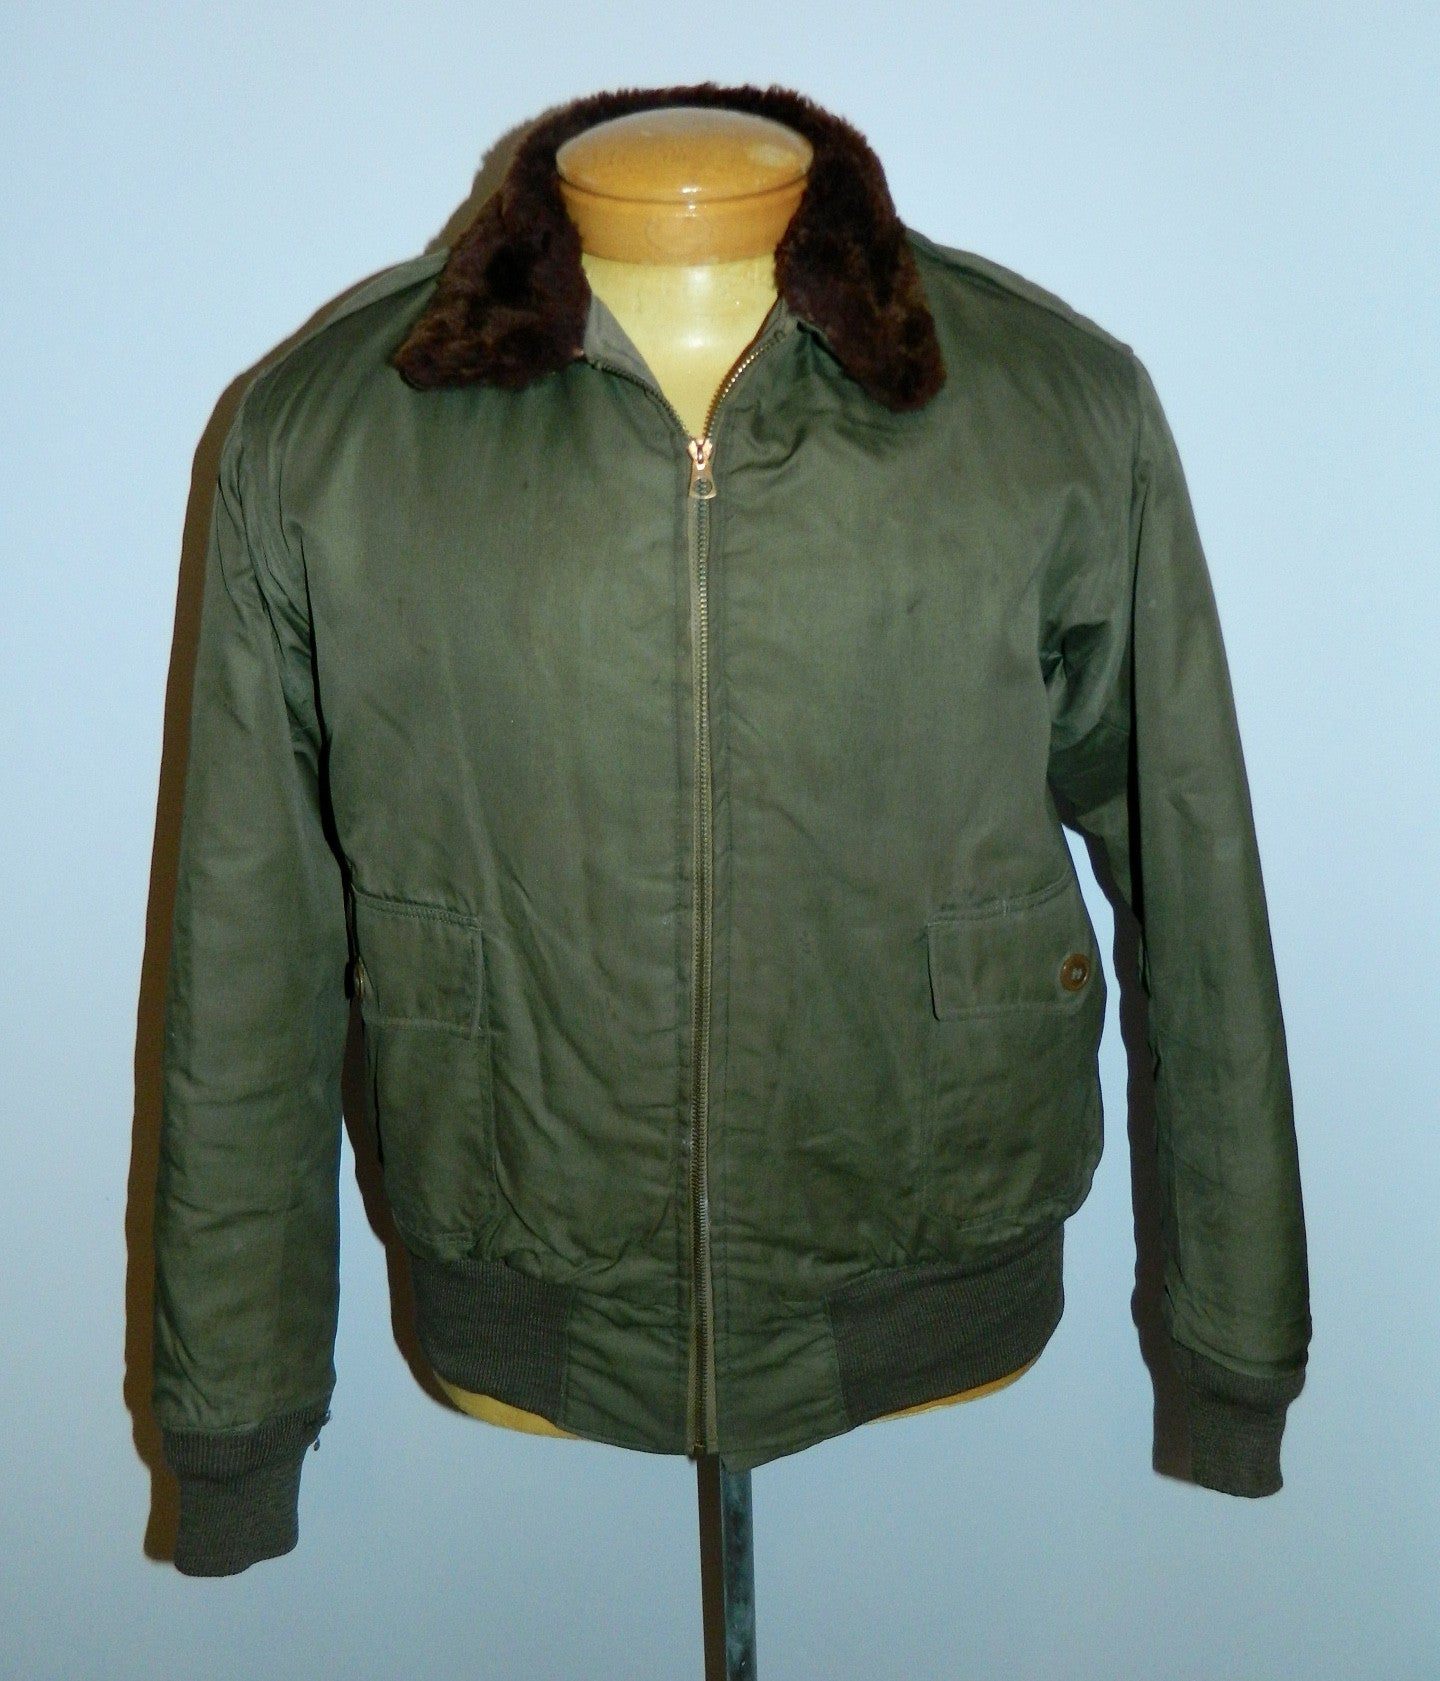 vintage 1940s B 10 flight jacket USAAF WWII cloth bomber jacket 42